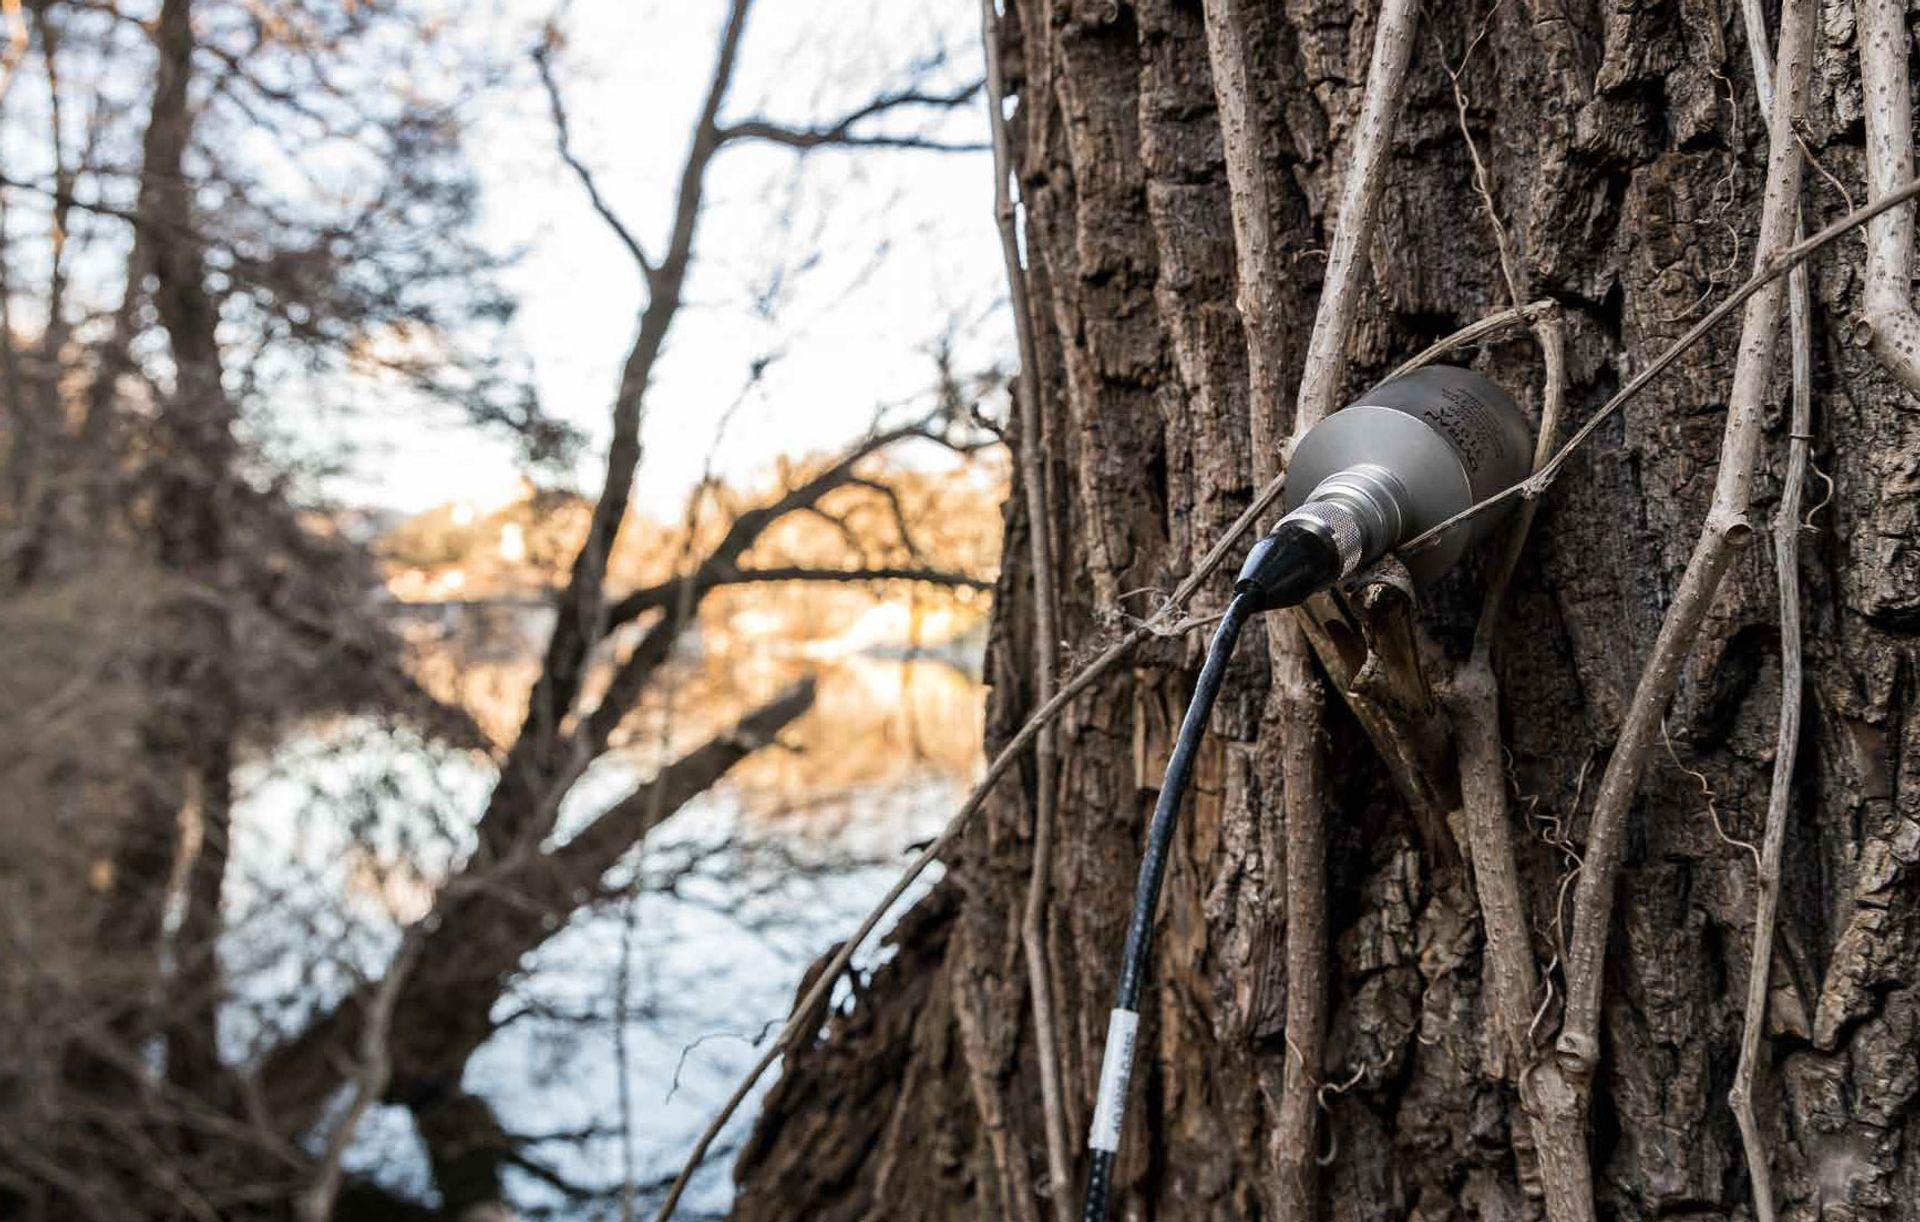 """For another sound art project, the artist Bill Fontana attached an accelerometer to a tree along the Mur River in Austria to record the sounds a tree """"hears"""""""